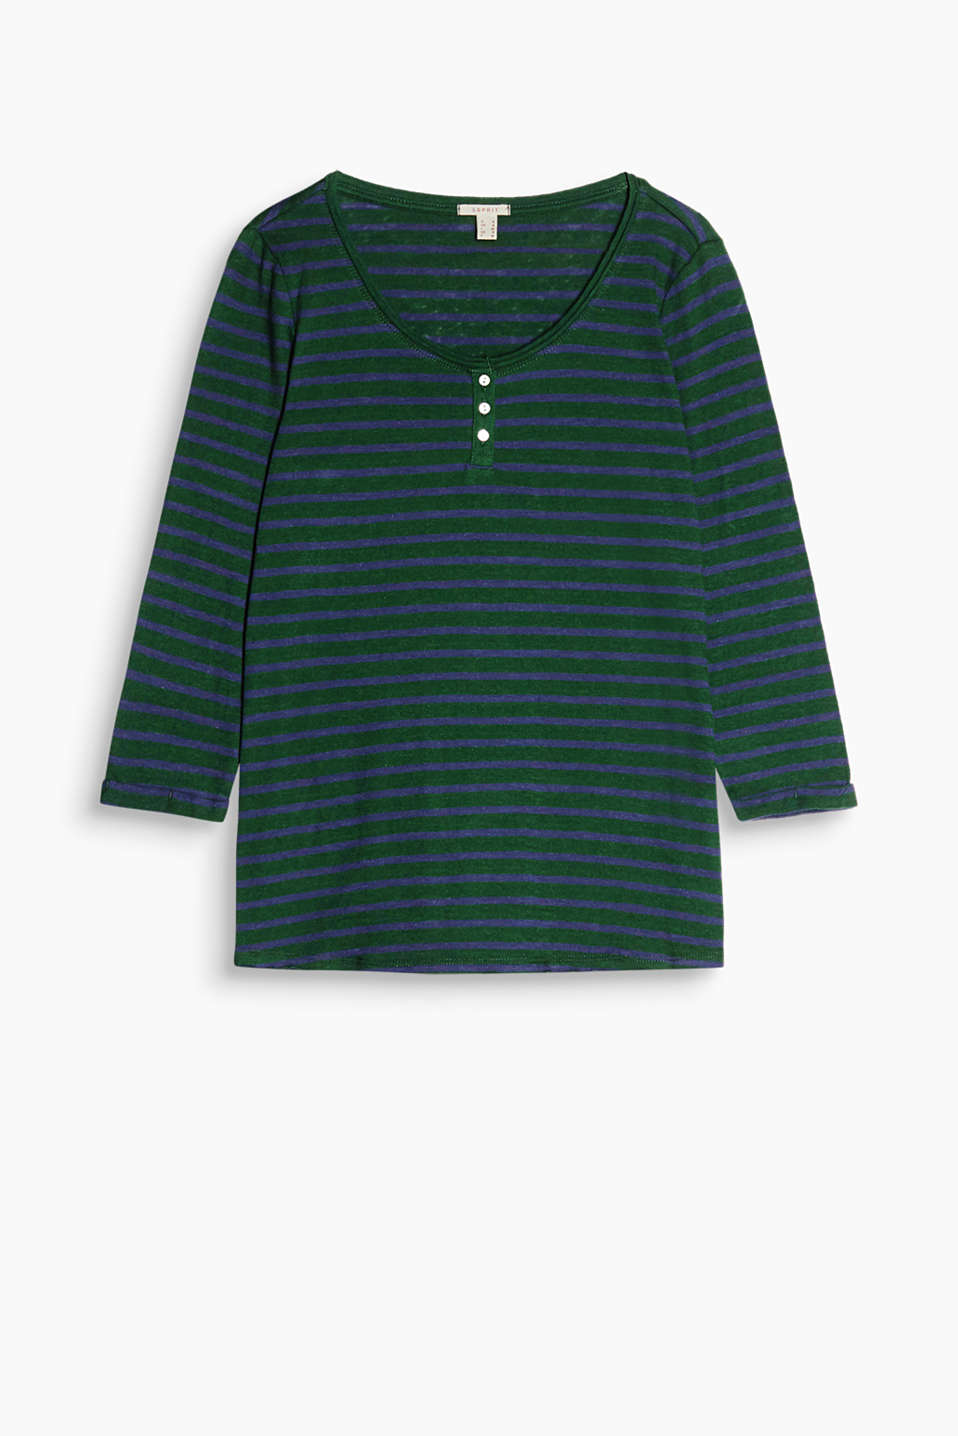 With a stripe pattern: long sleeve top with cropped sleeves, a wide round neckline and button placket